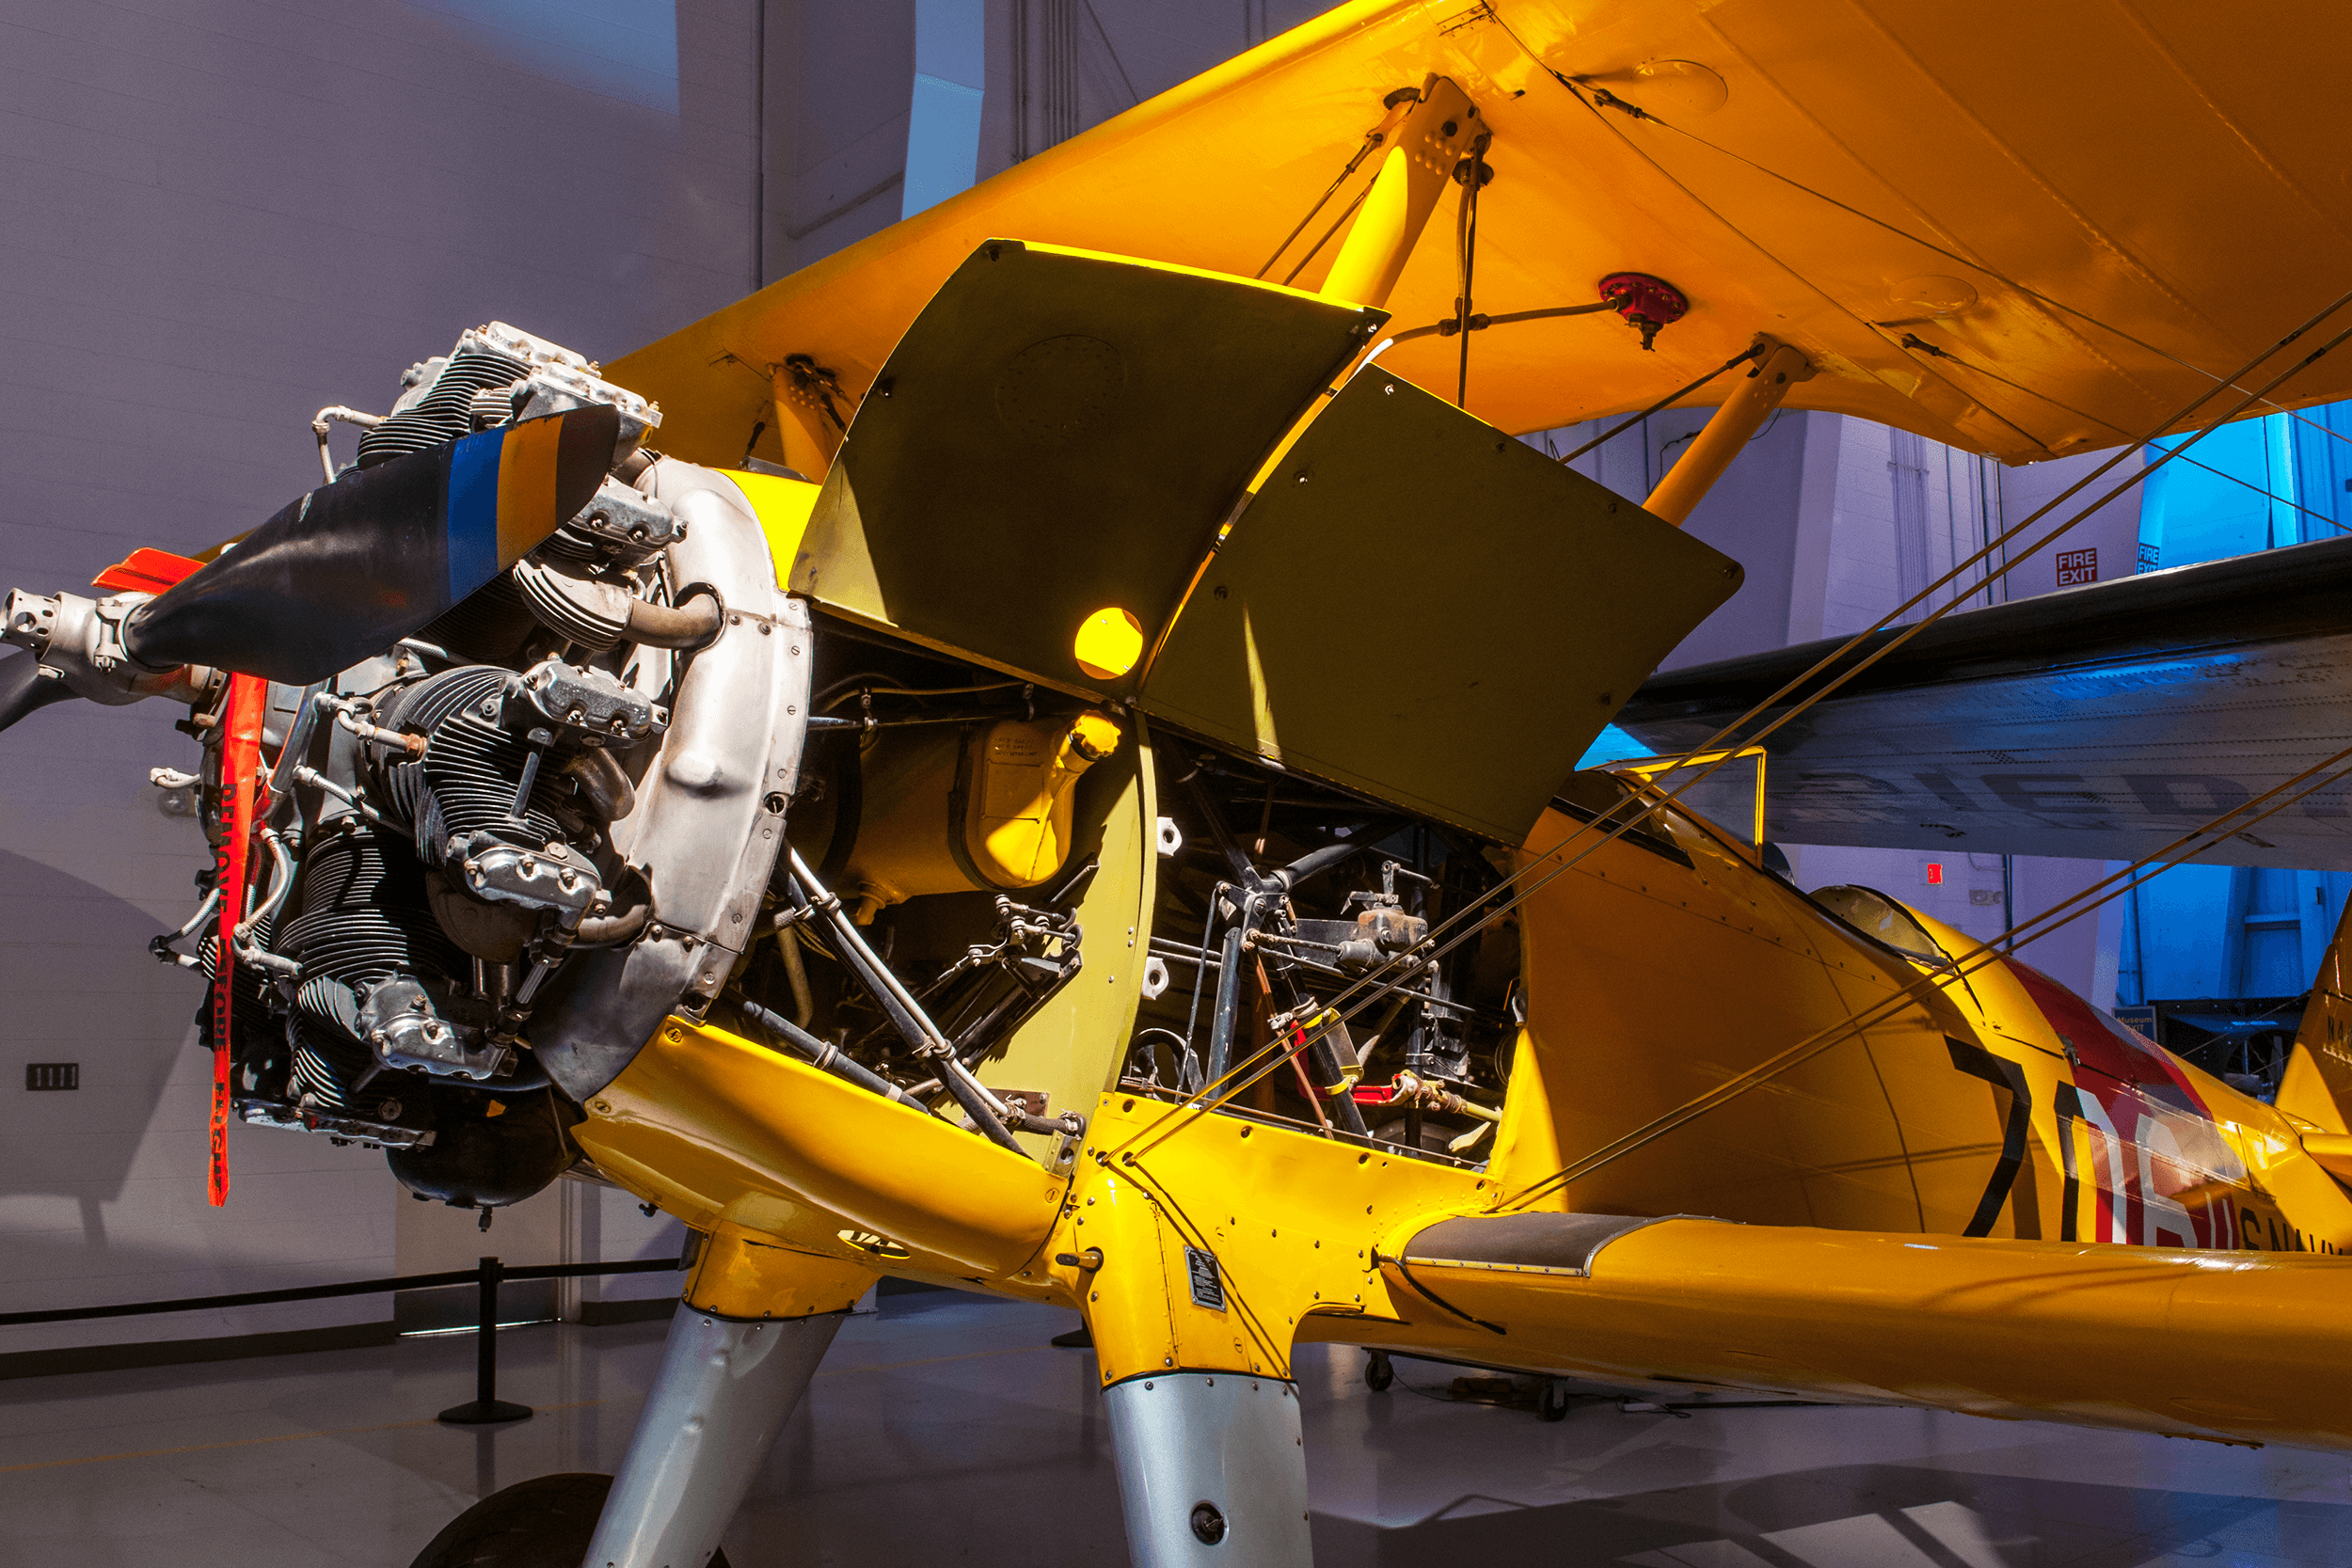 The Kaydet was introduced in 1933. Its structural rigidity and dual cockpits made it ideal as a trainer for military pilots. From 1933 to 1946 over 8,000 Kaydets were produced.